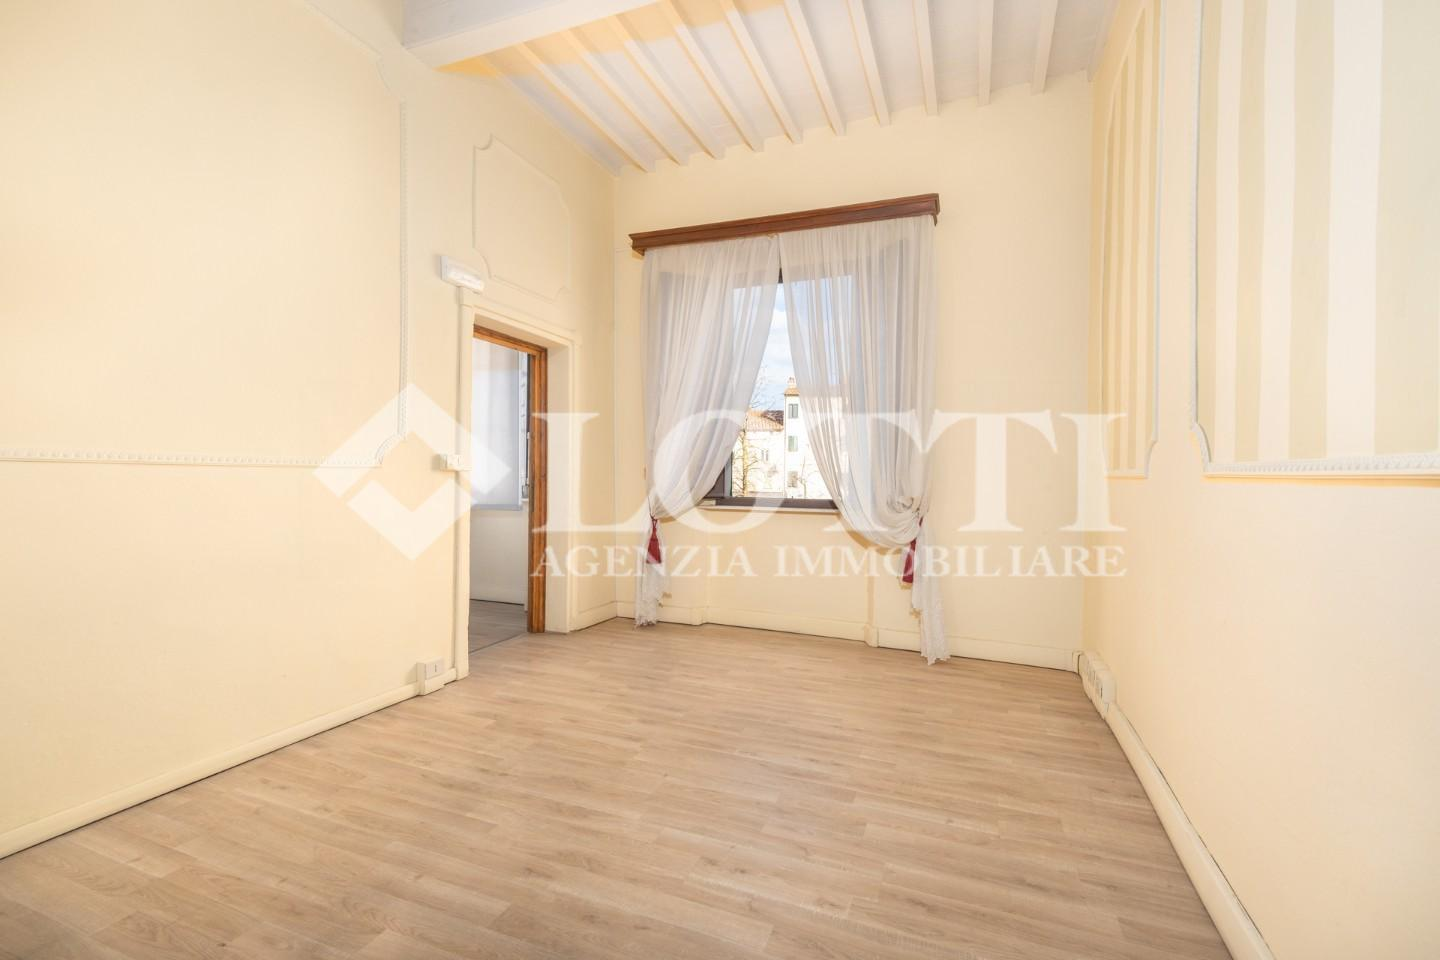 Office for commercial rentals in Bientina (PI)